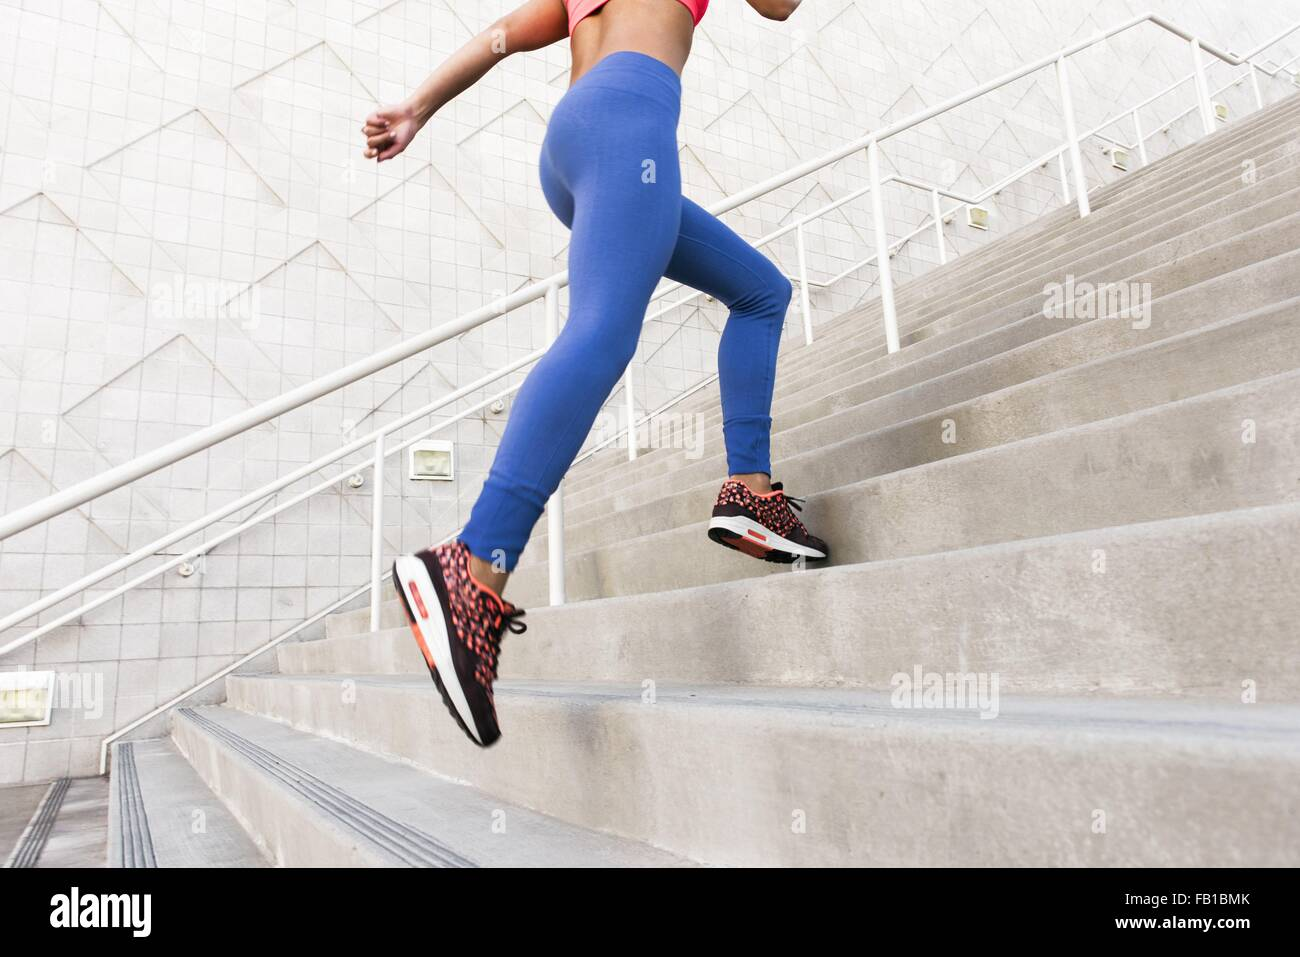 Low angle rear view of young woman, wearing sports clothing running up stairs - Stock Image